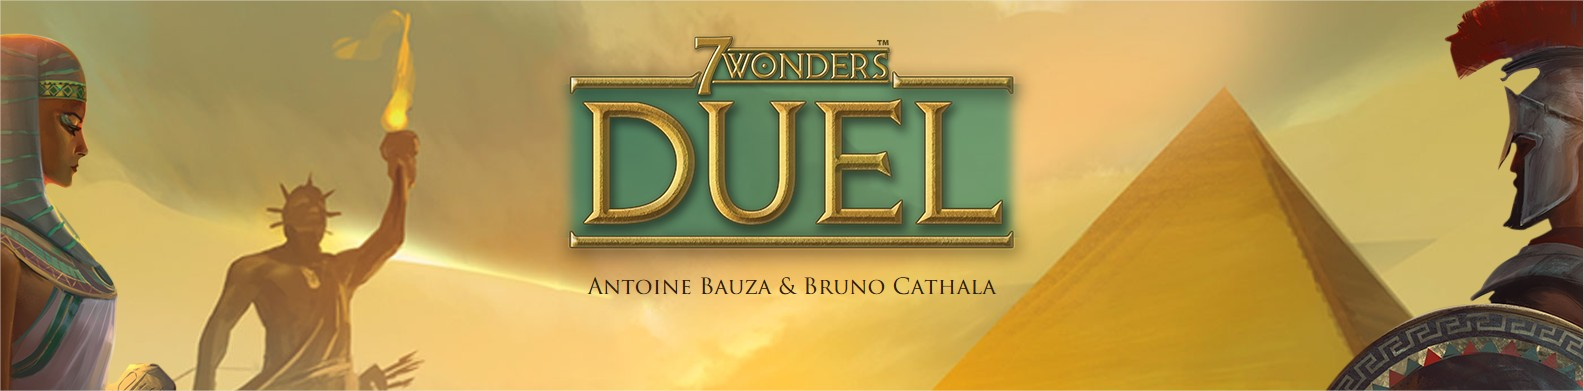 7 wonders duel review